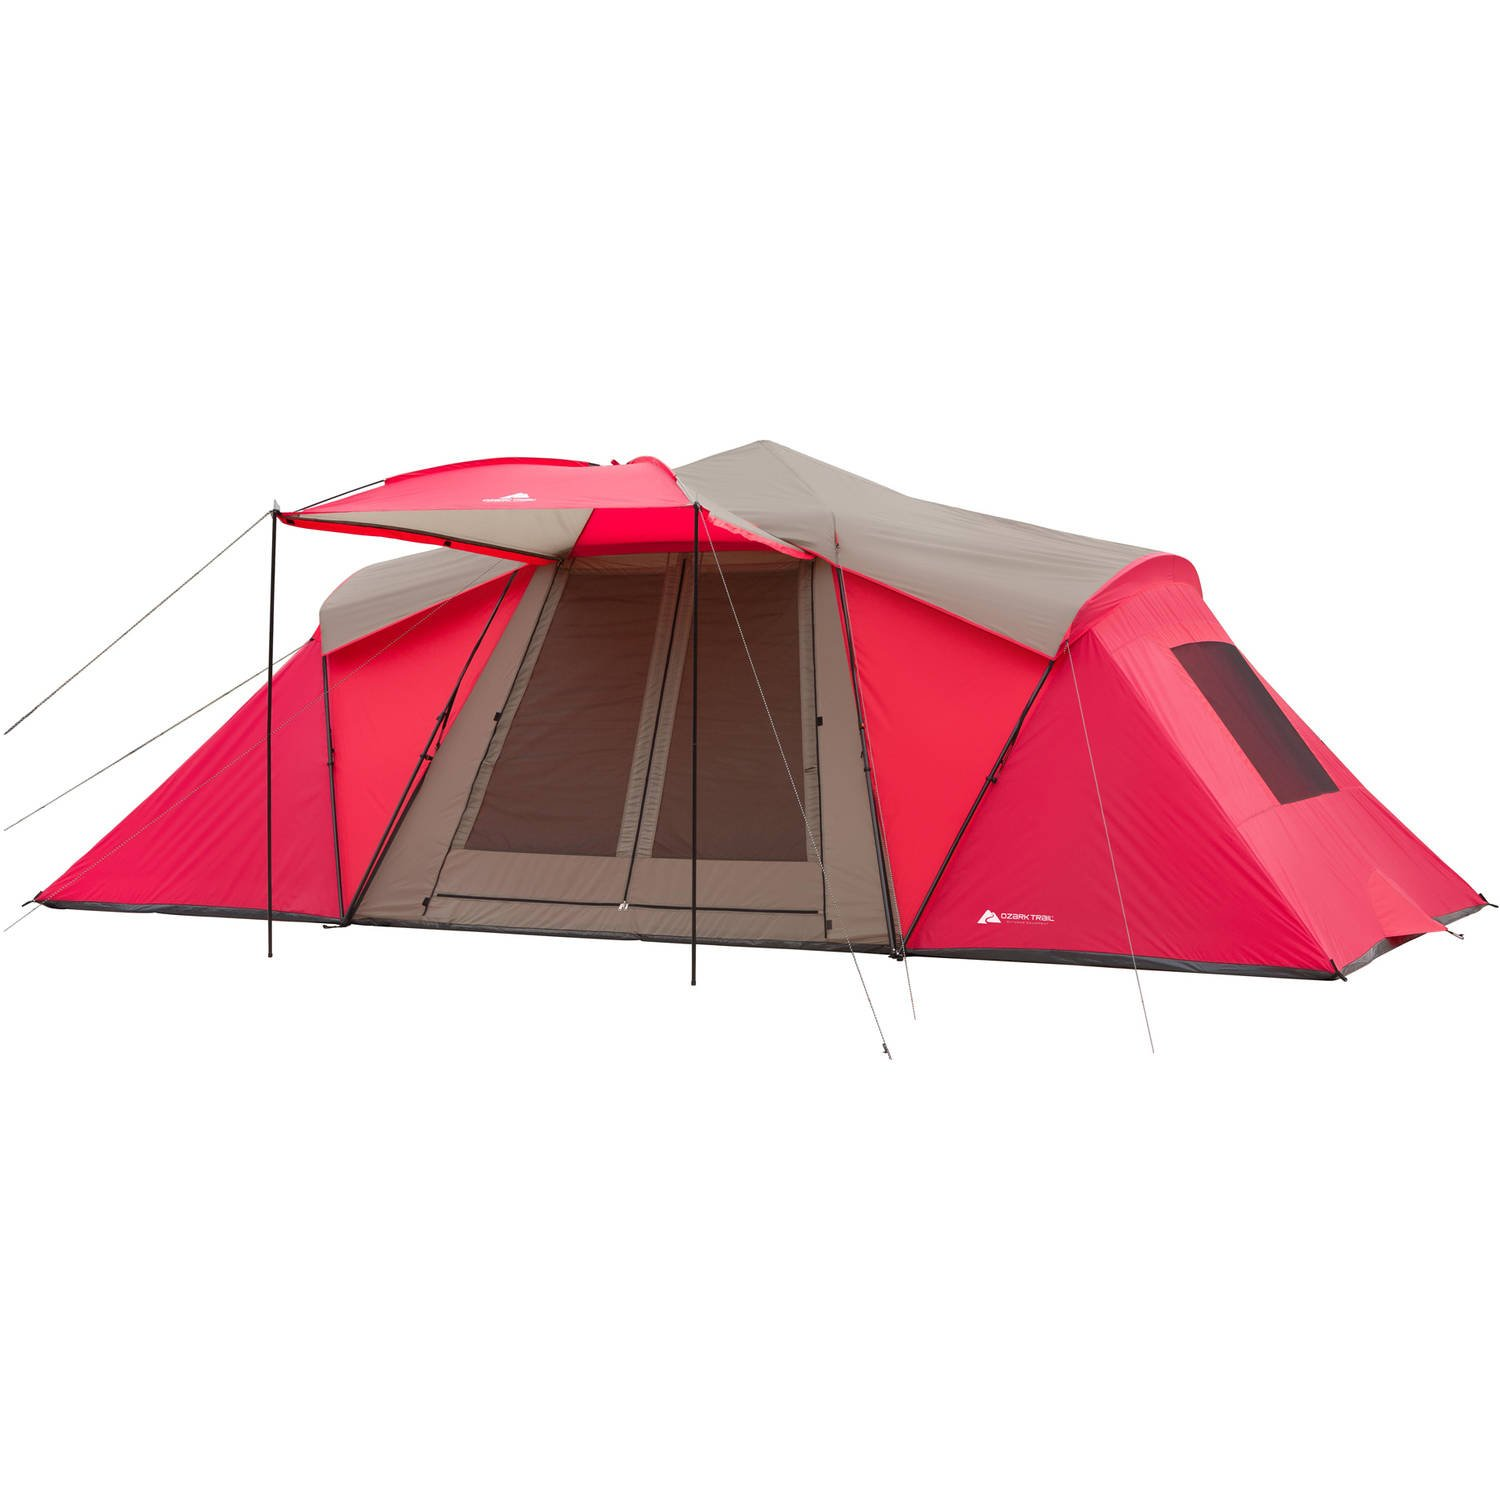 Amazon.com Ozark Trail 12 Person 3 Room Hybrid Instant Tent with Awning Cell Phones u0026 Accessories  sc 1 st  Amazon.com & Amazon.com: Ozark Trail 12 Person 3 Room Hybrid Instant Tent with ...